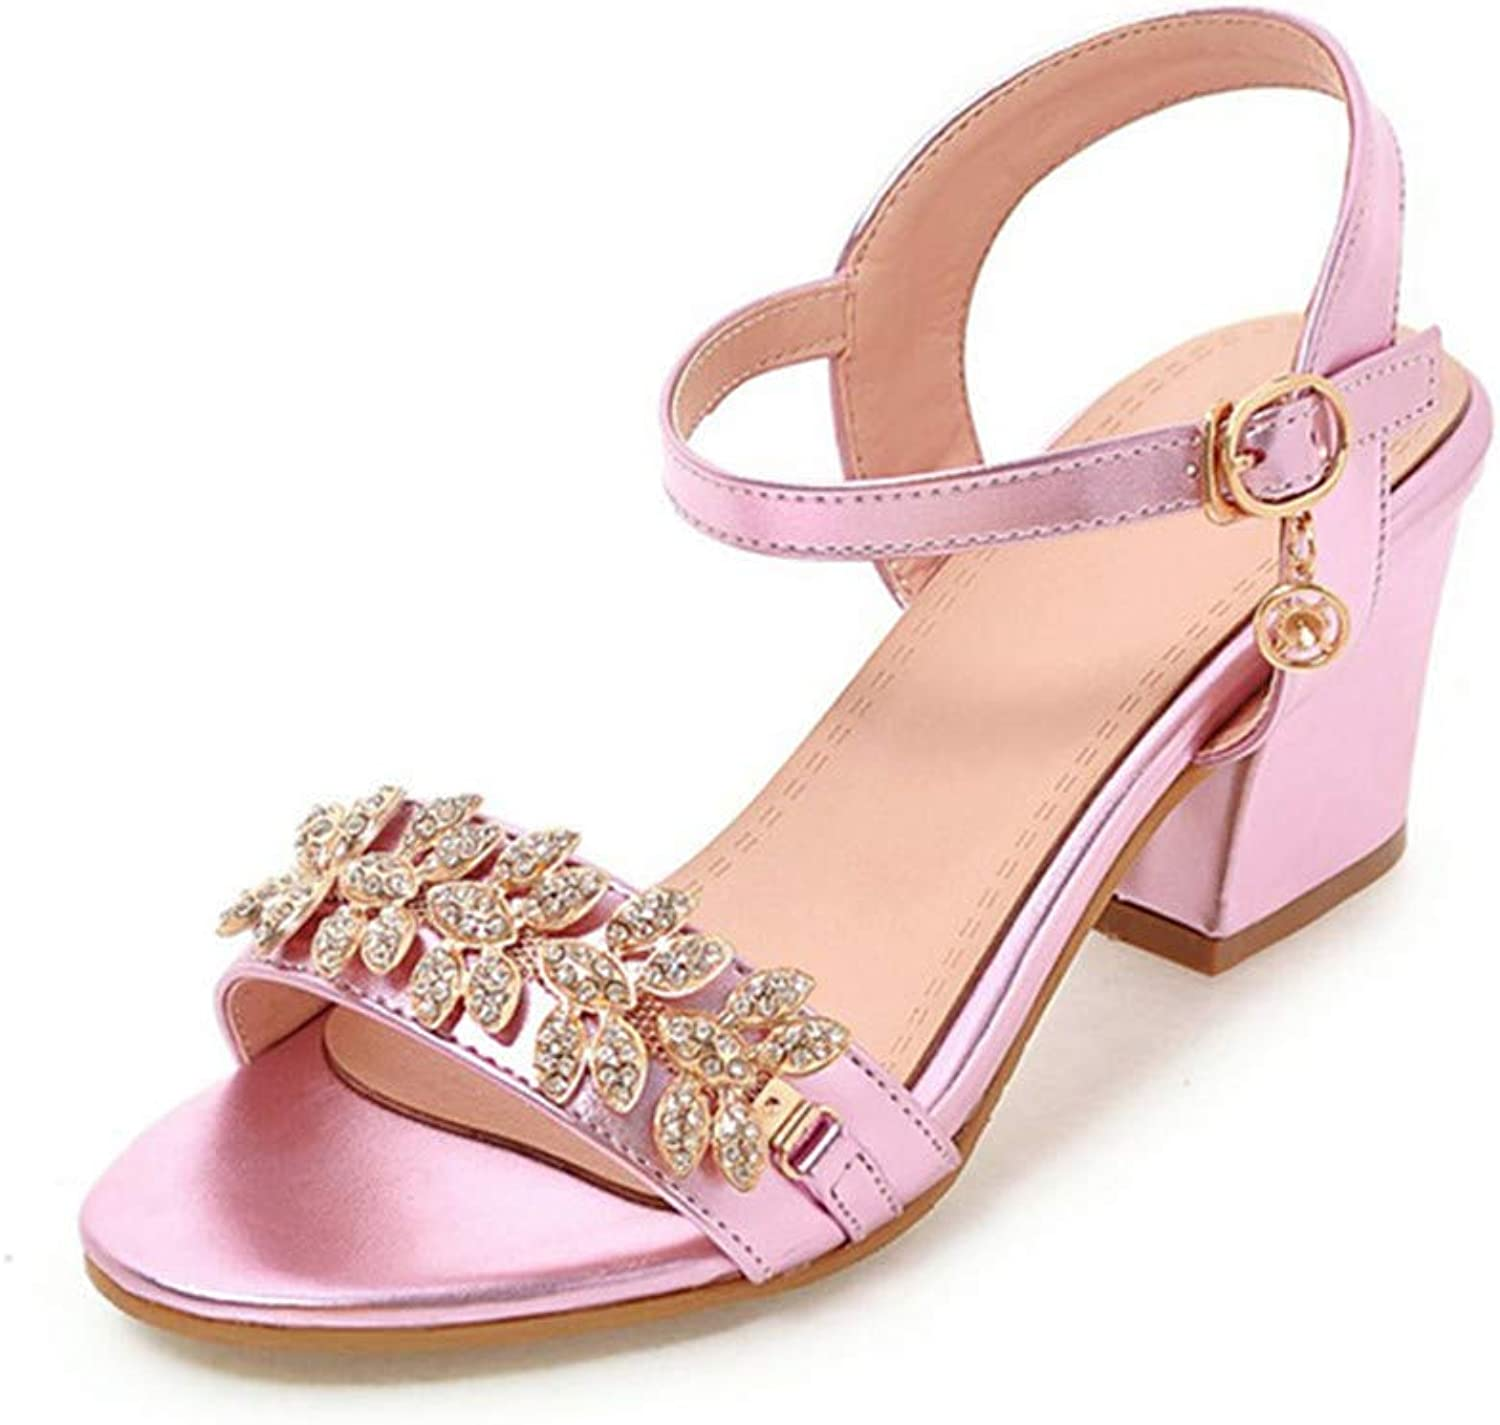 XuanHan shoes Crystals Ankle Strap Women shoes Fashion Square Heels Summer Sandals